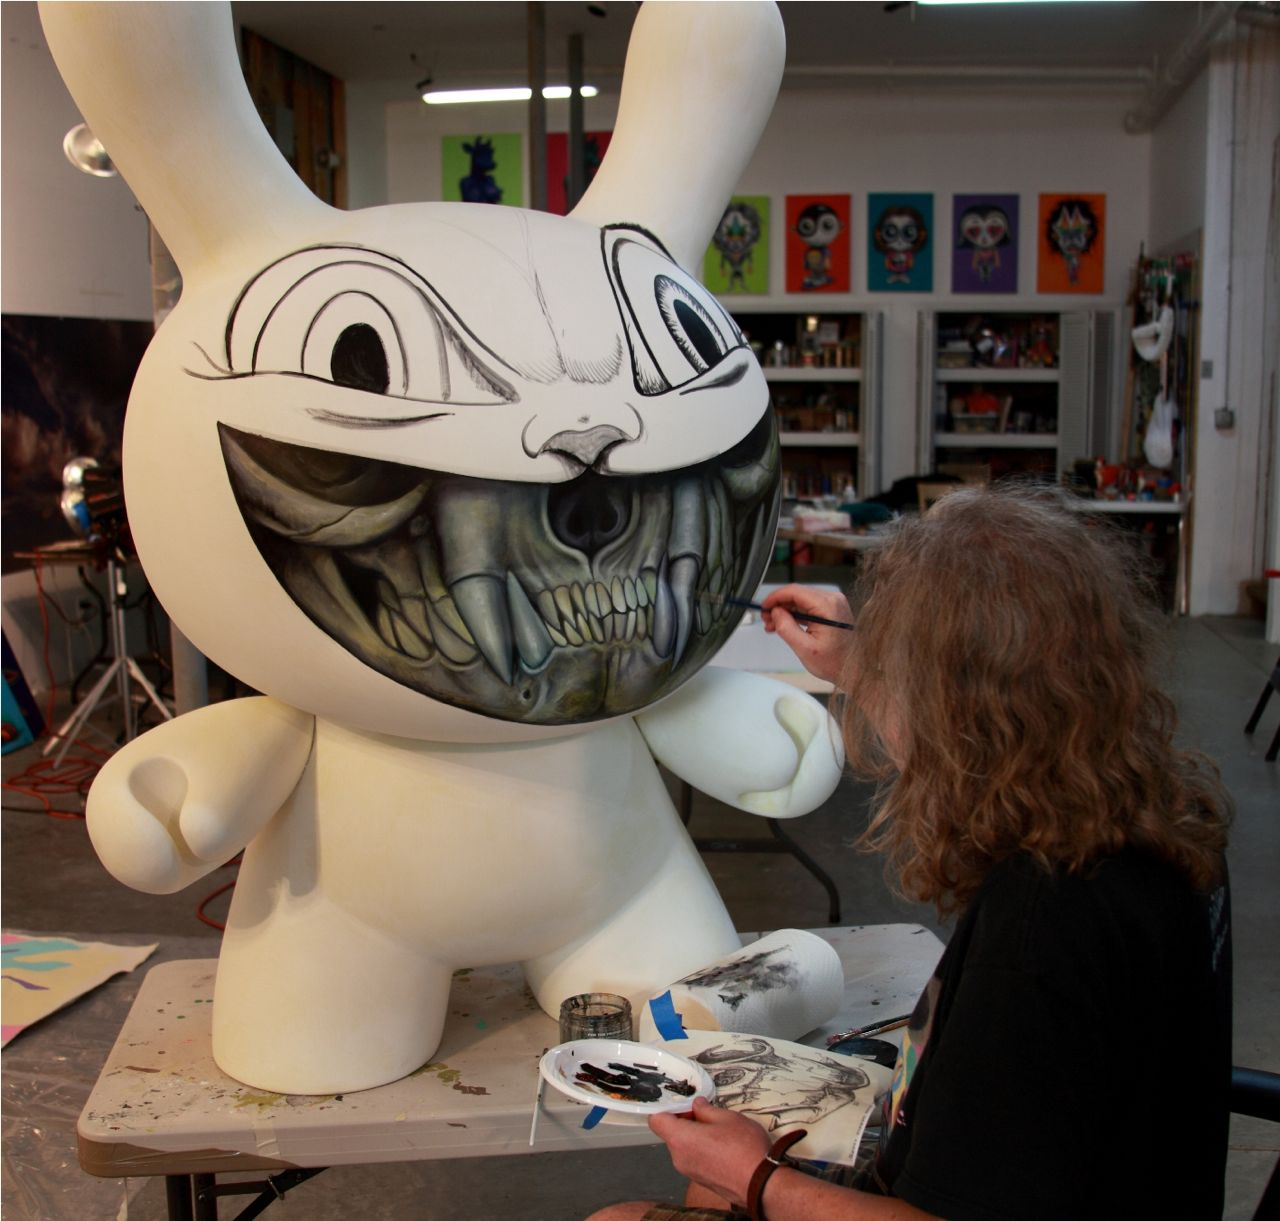 ron painting dunny